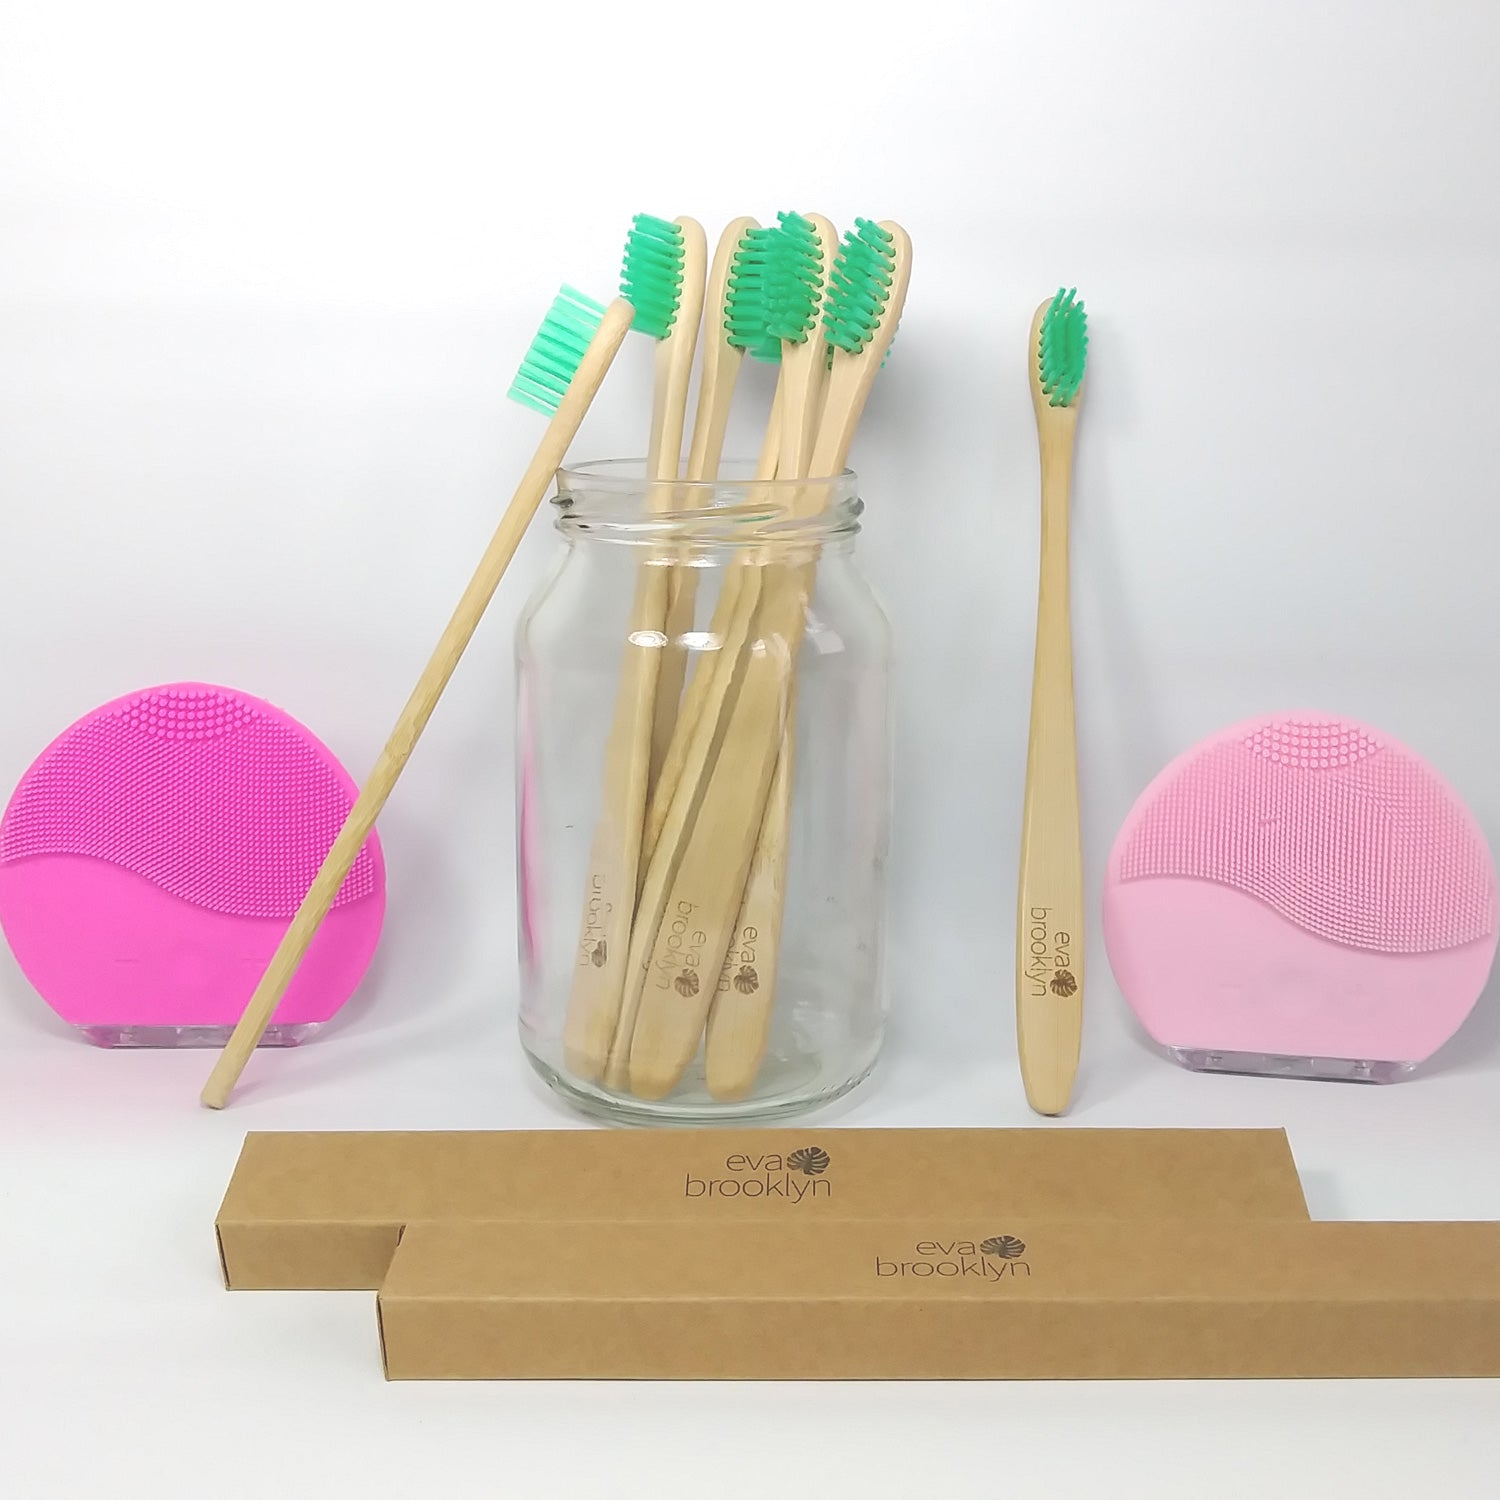 8 Bamboo toothbrushes pack - Biodegradable